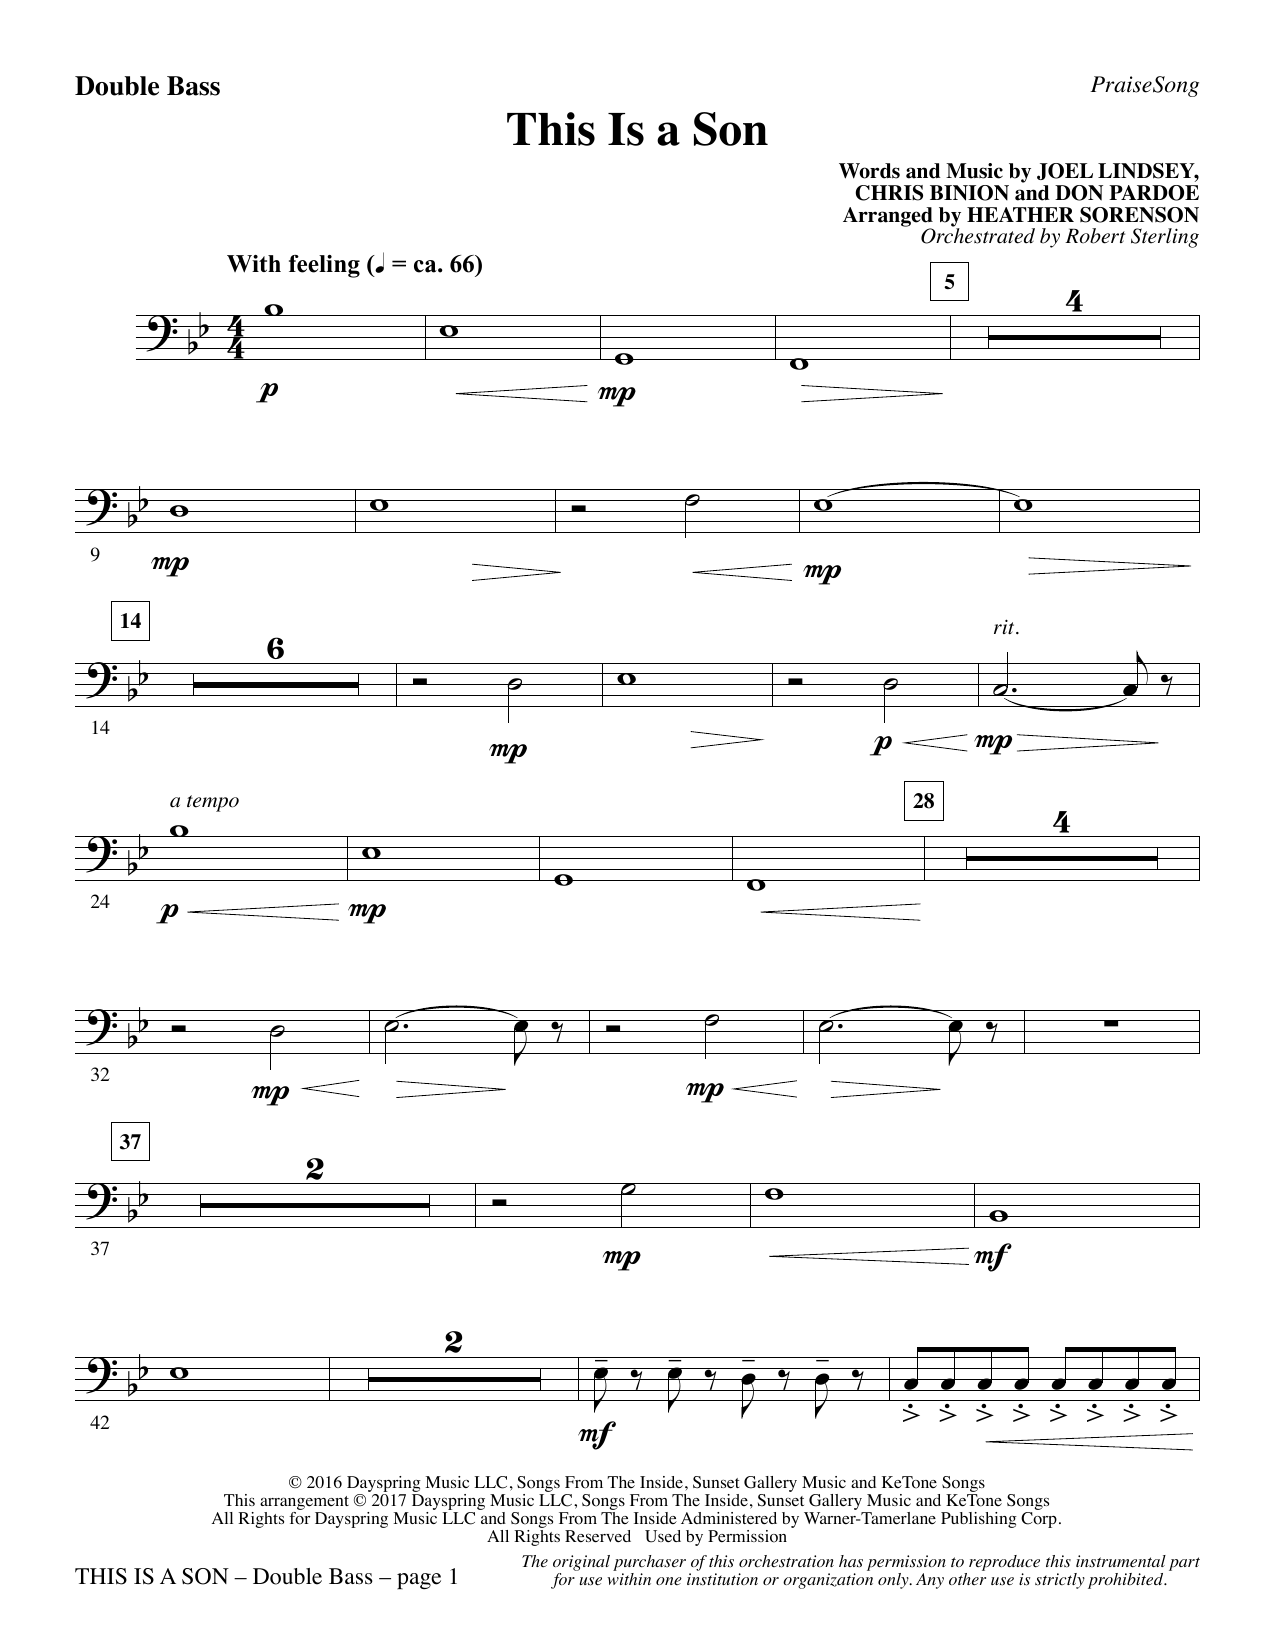 This Is a Son - Double Bass Sheet Music